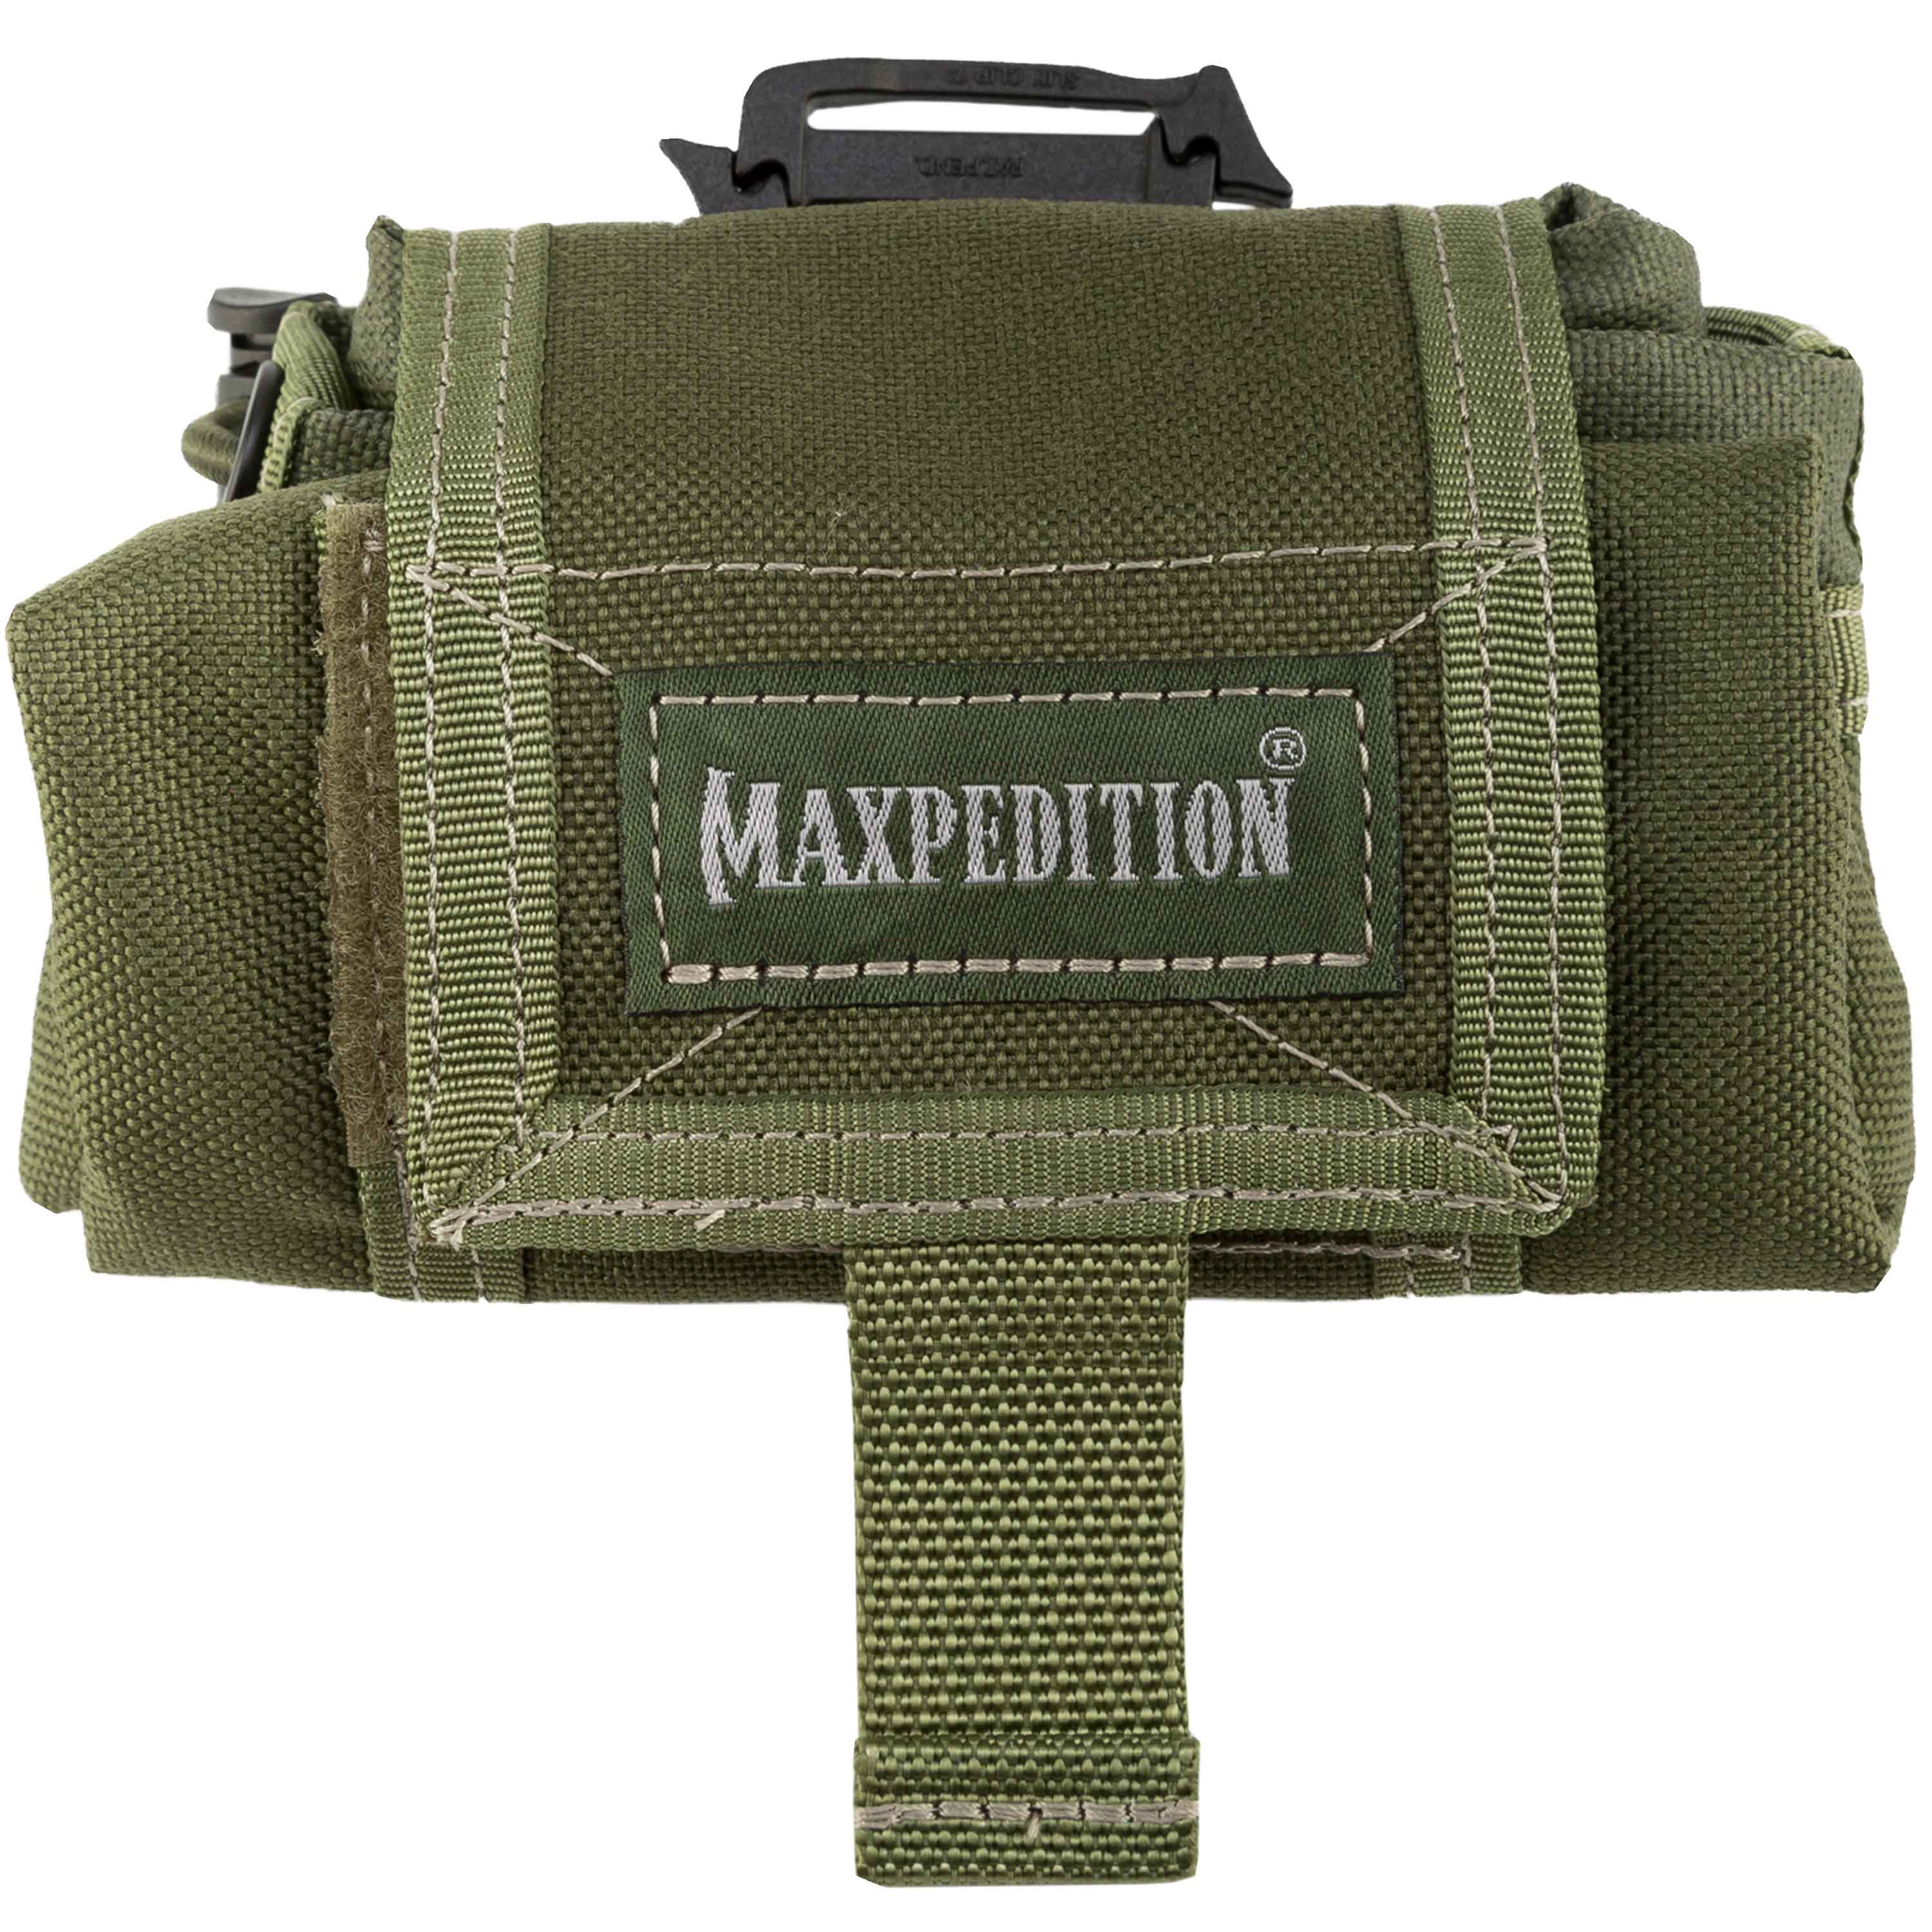 Maxpedition Rollypoly oliv